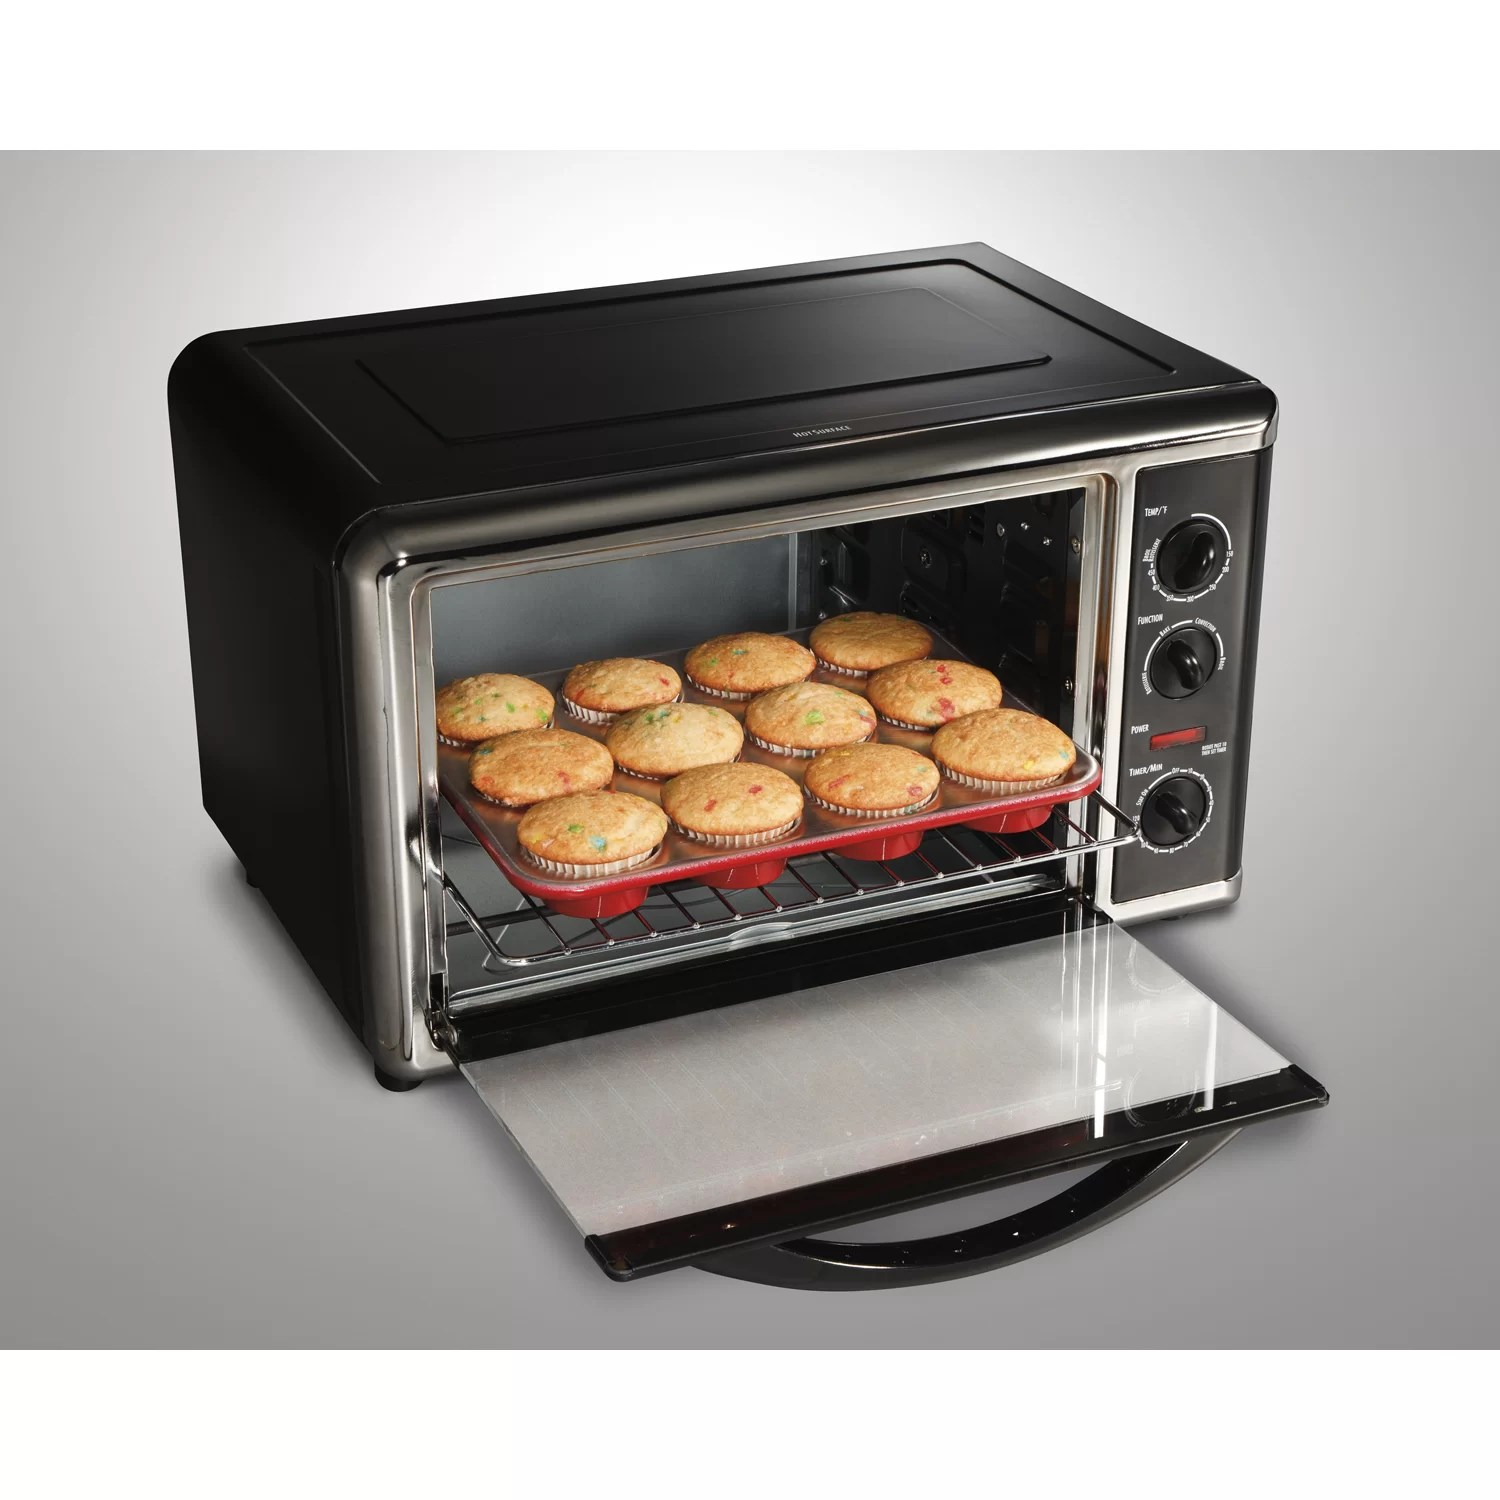 Countertop Pizza Oven Reviews Hamilton Beach Countertop Convection And Rotisserie Oven